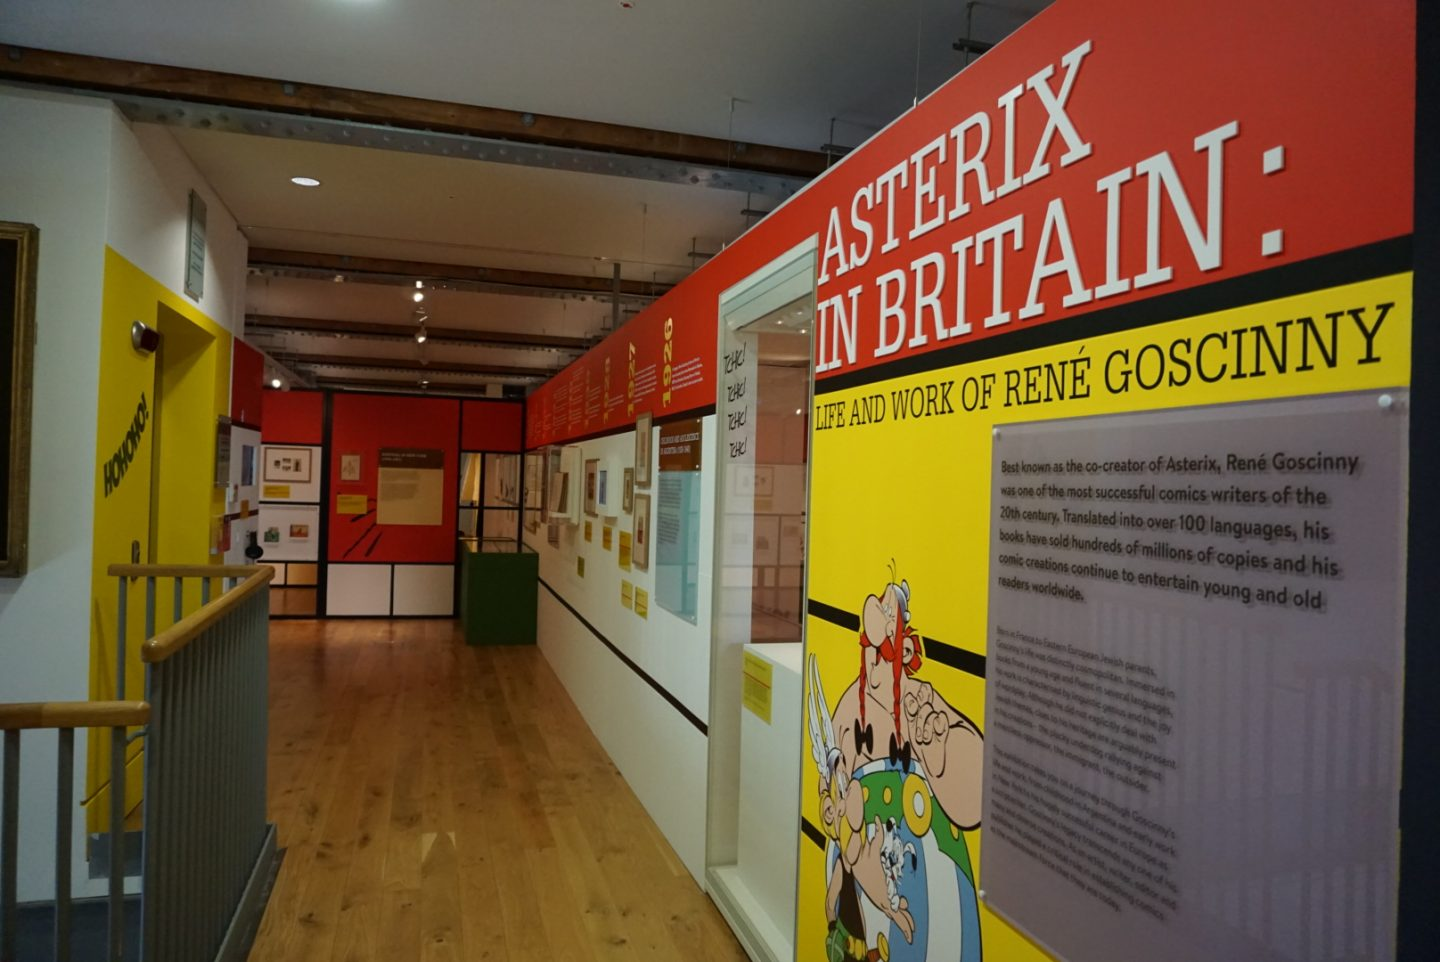 Asterix in Britain at the Jewish Museum - first introductory walls